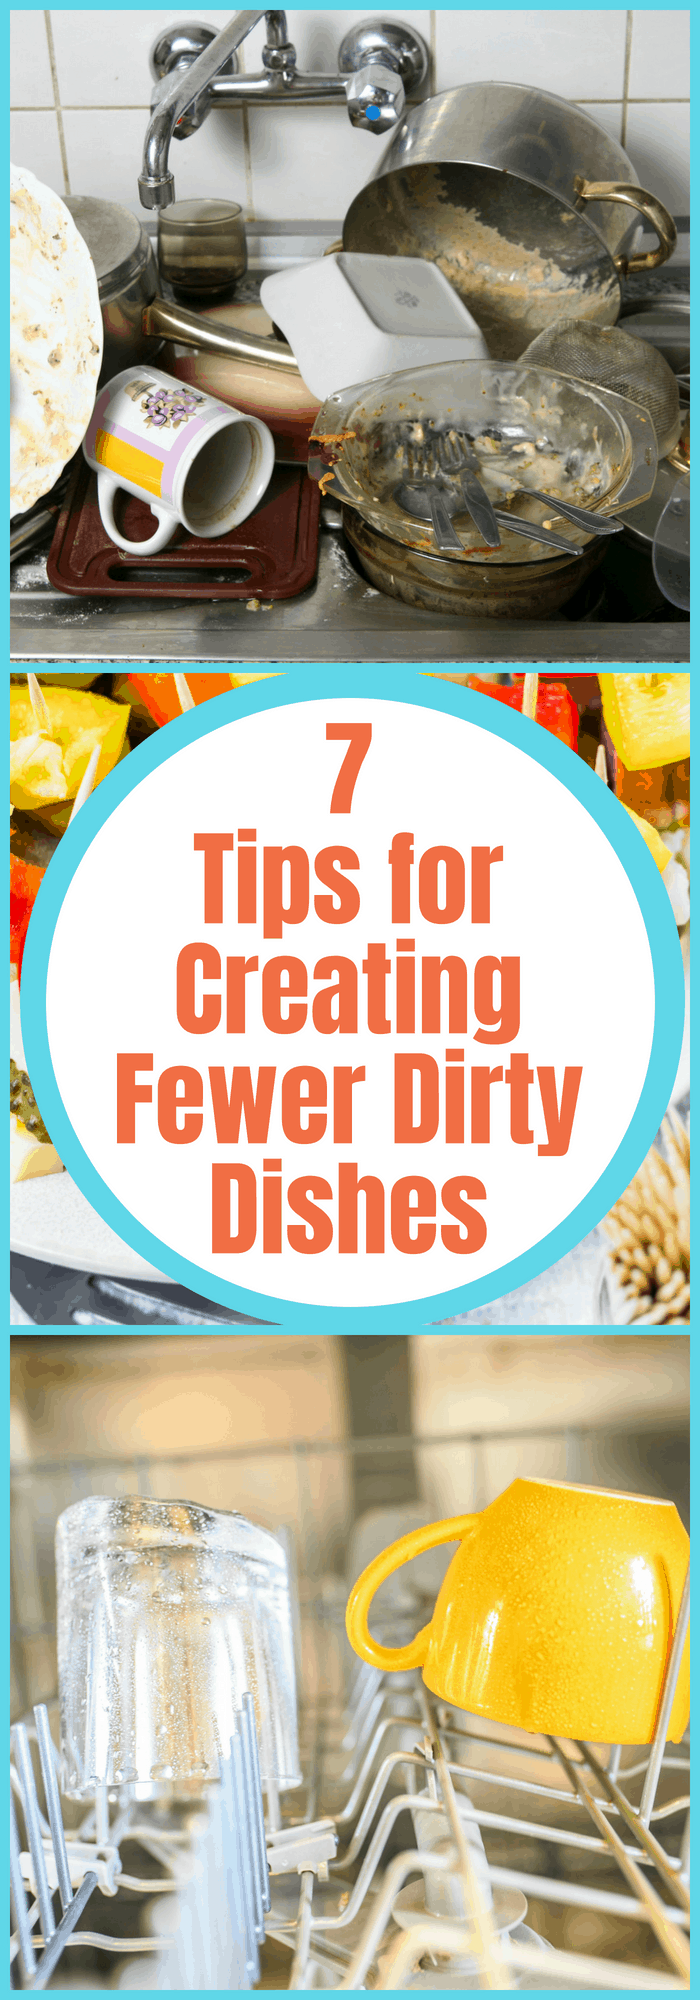 7 Tips for Creating Fewer Dirty Dishes